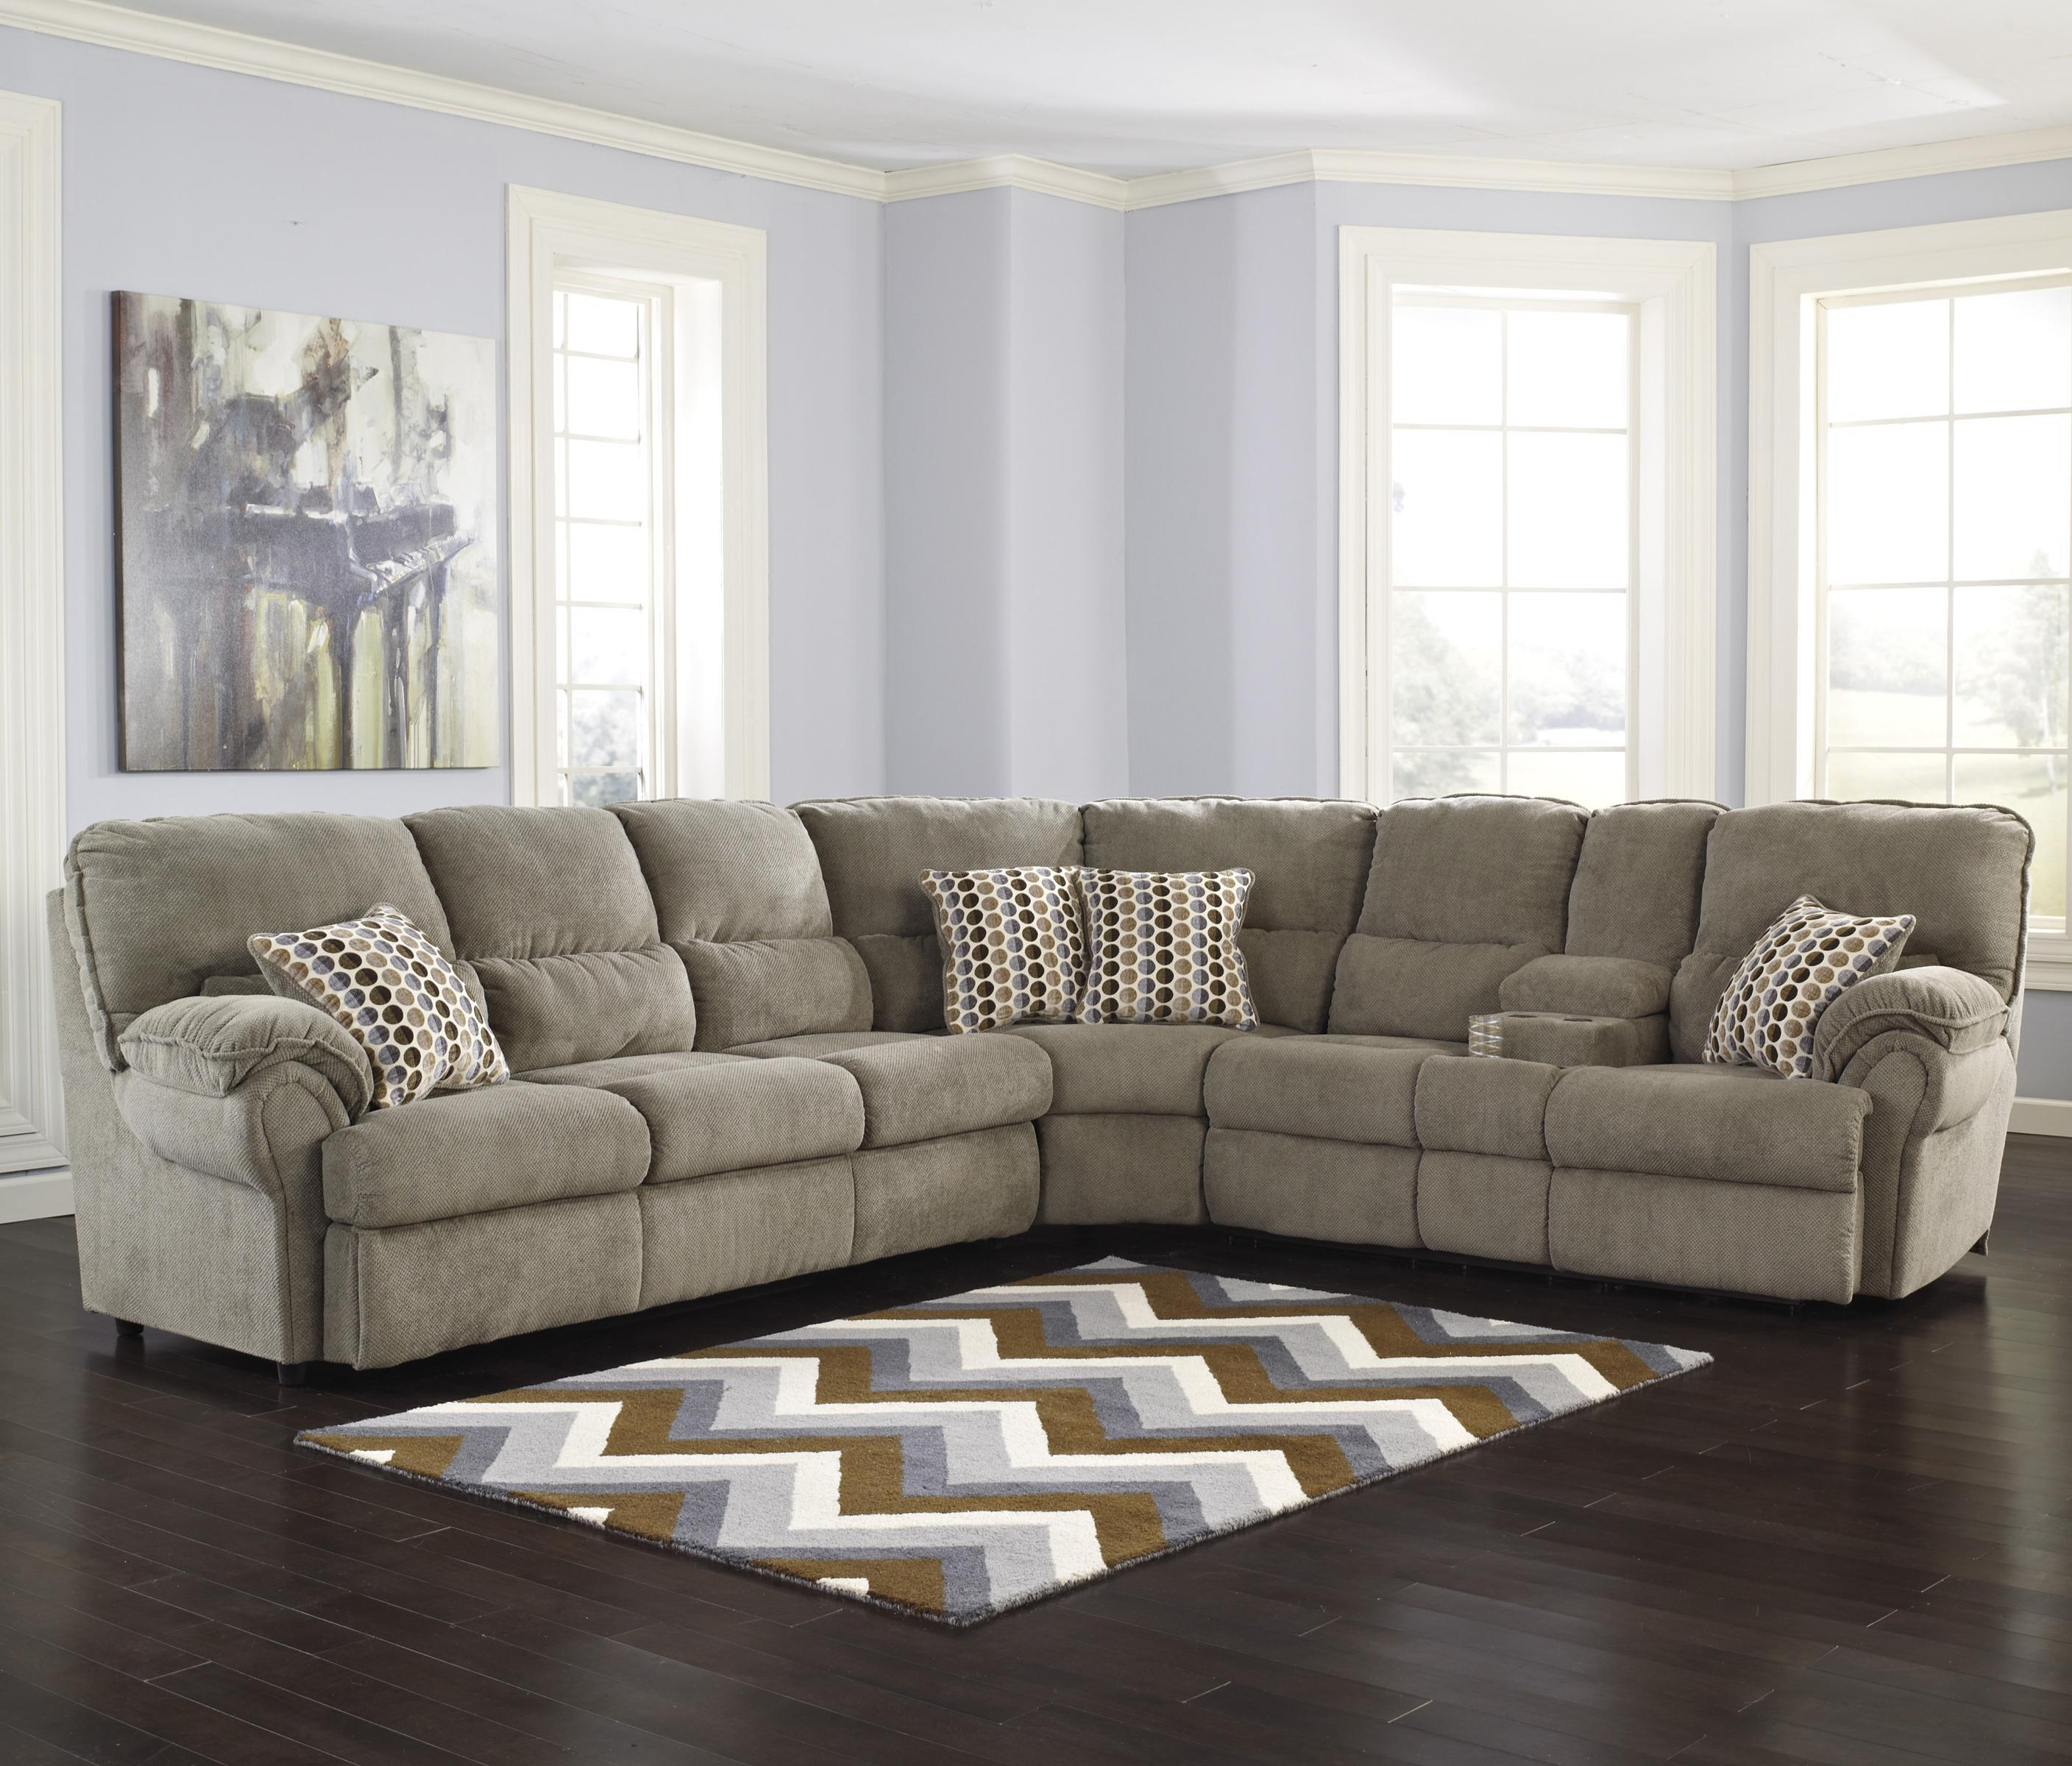 Sectional Sofa With Recliner And Queen Sleeper | Tehranmix Decoration For Sectional With Recliner And Sleeper (Image 15 of 20)